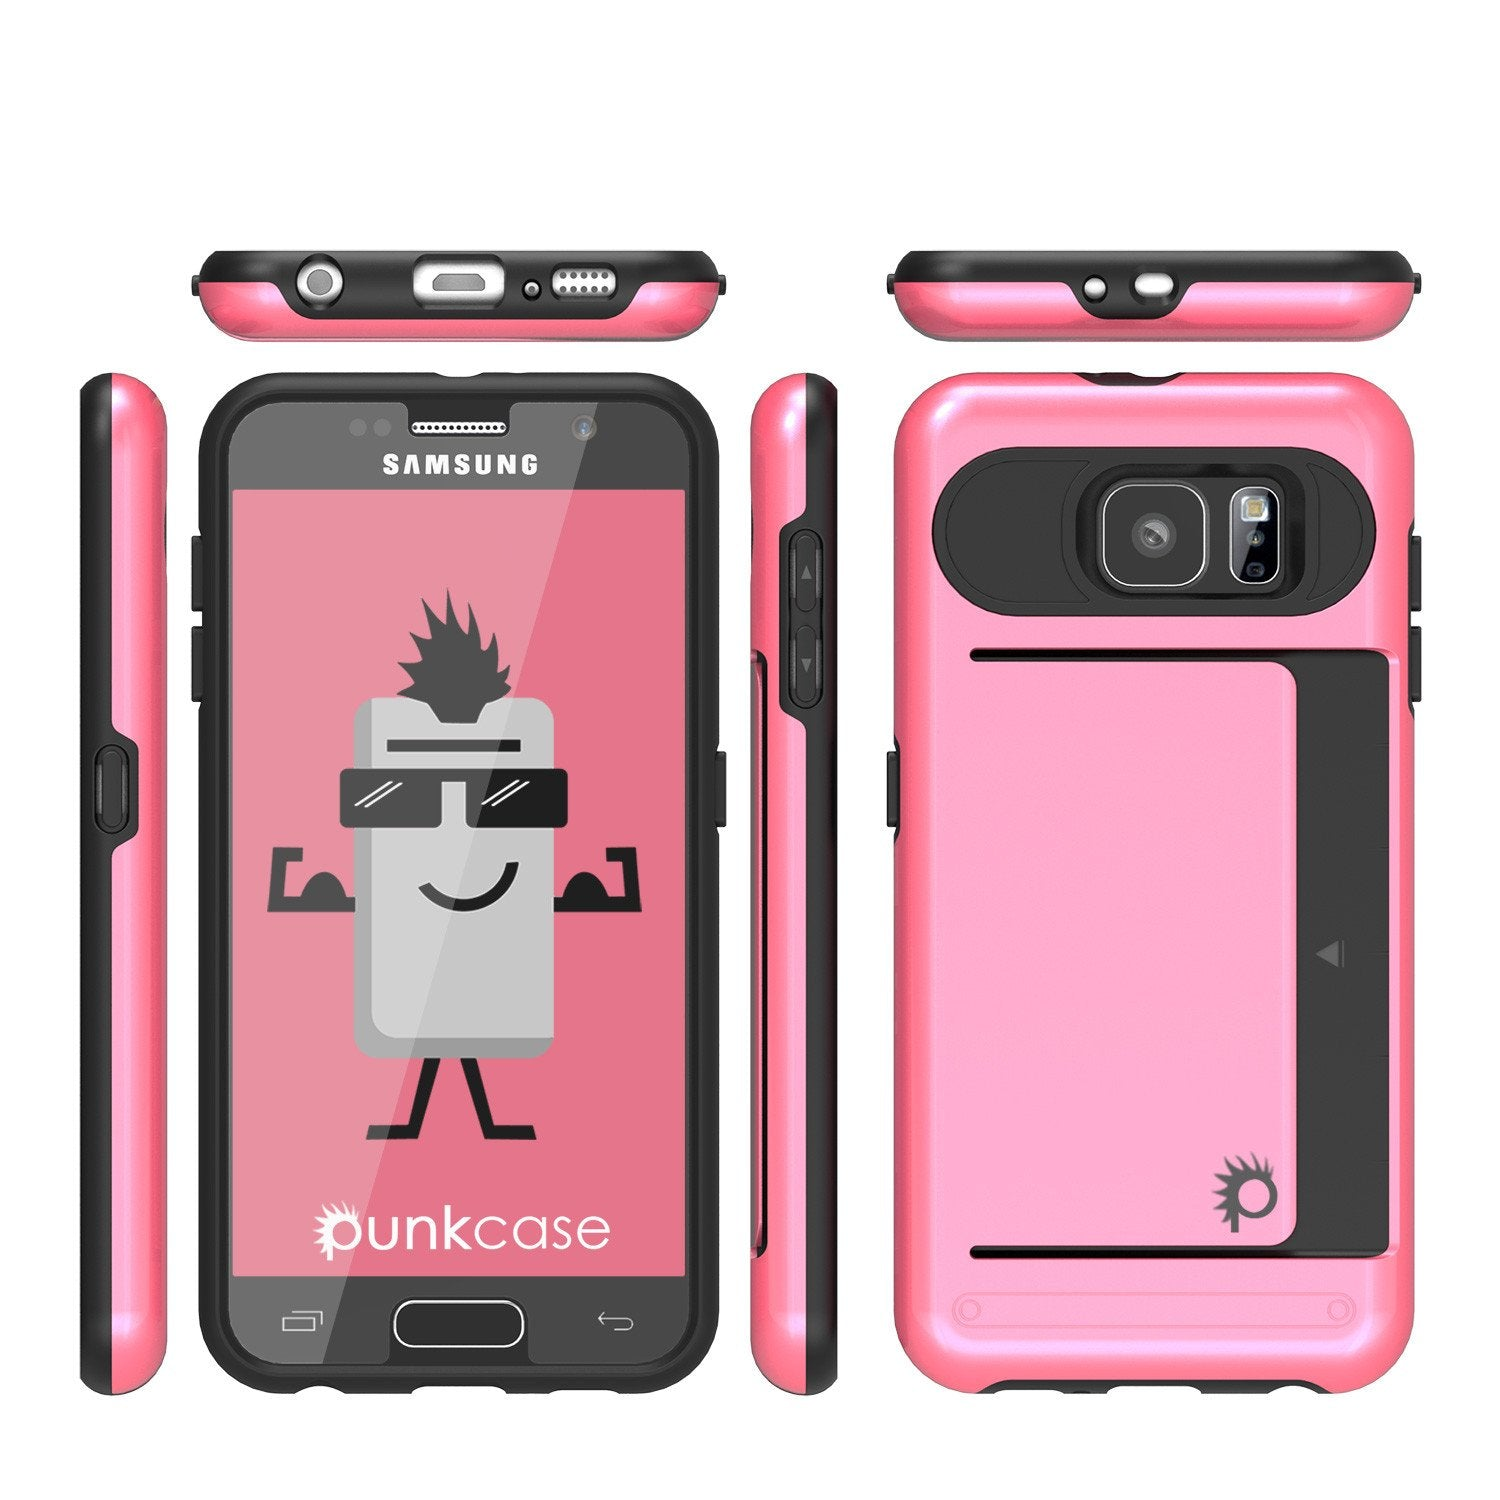 Galaxy s6 Case PunkCase CLUTCH Pink Series Slim Armor Soft Cover Case w/ Tempered Glass - PunkCase NZ